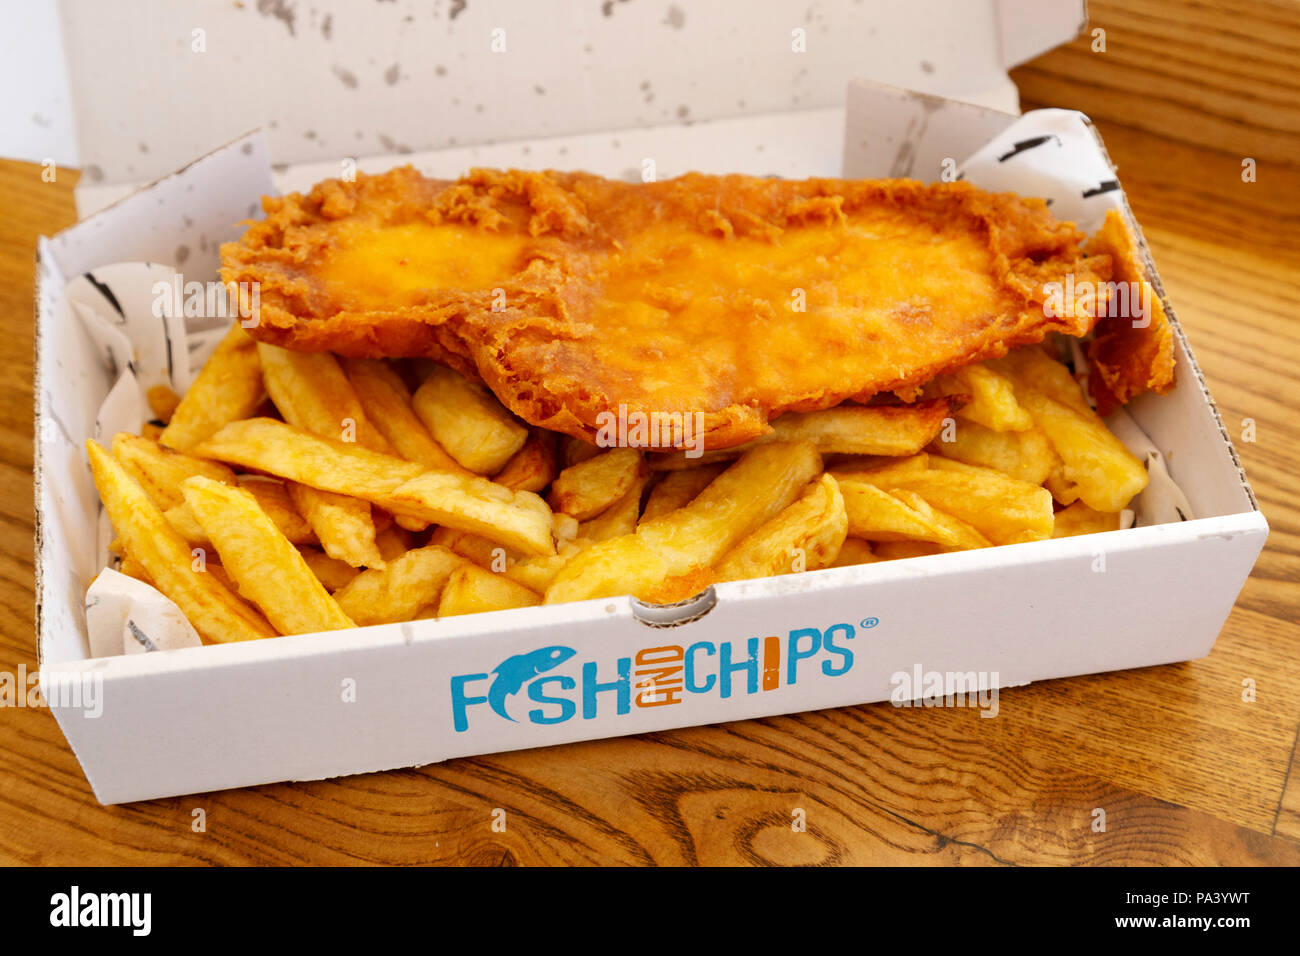 Fish and chips served at Tynemouth in England. The dish is traditional British meal. - Stock Image